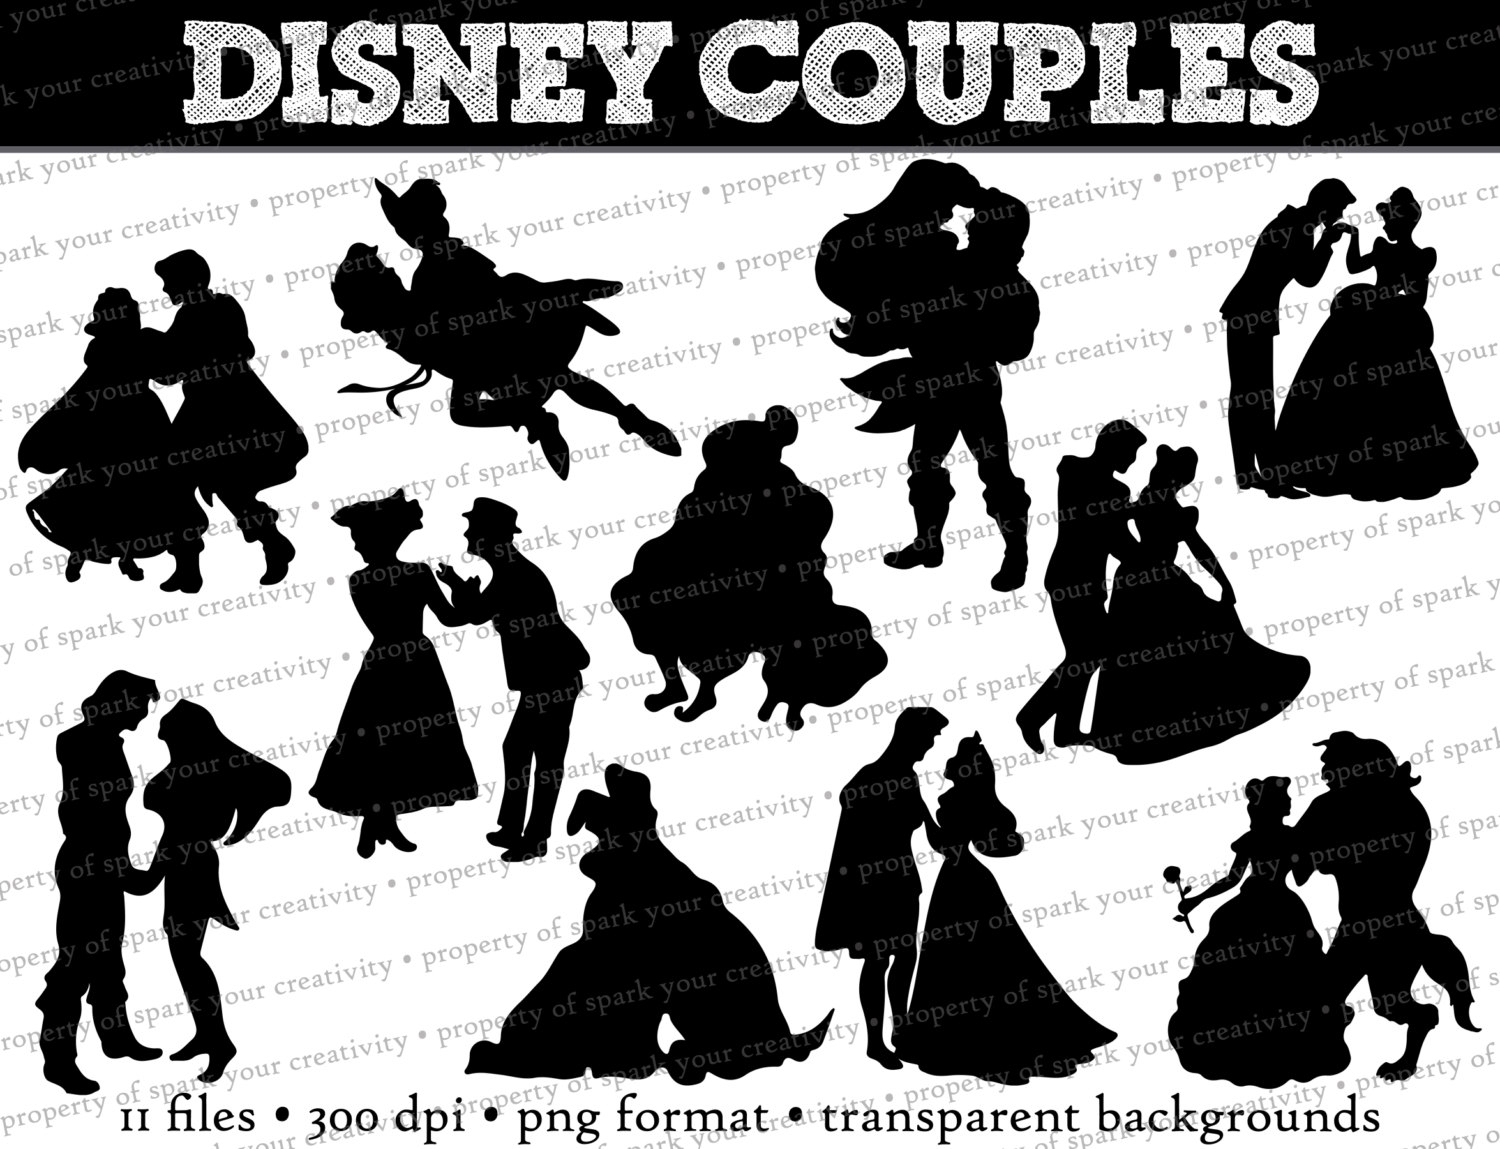 Disney Princess and Prince Silhouettes // Disney Couples.